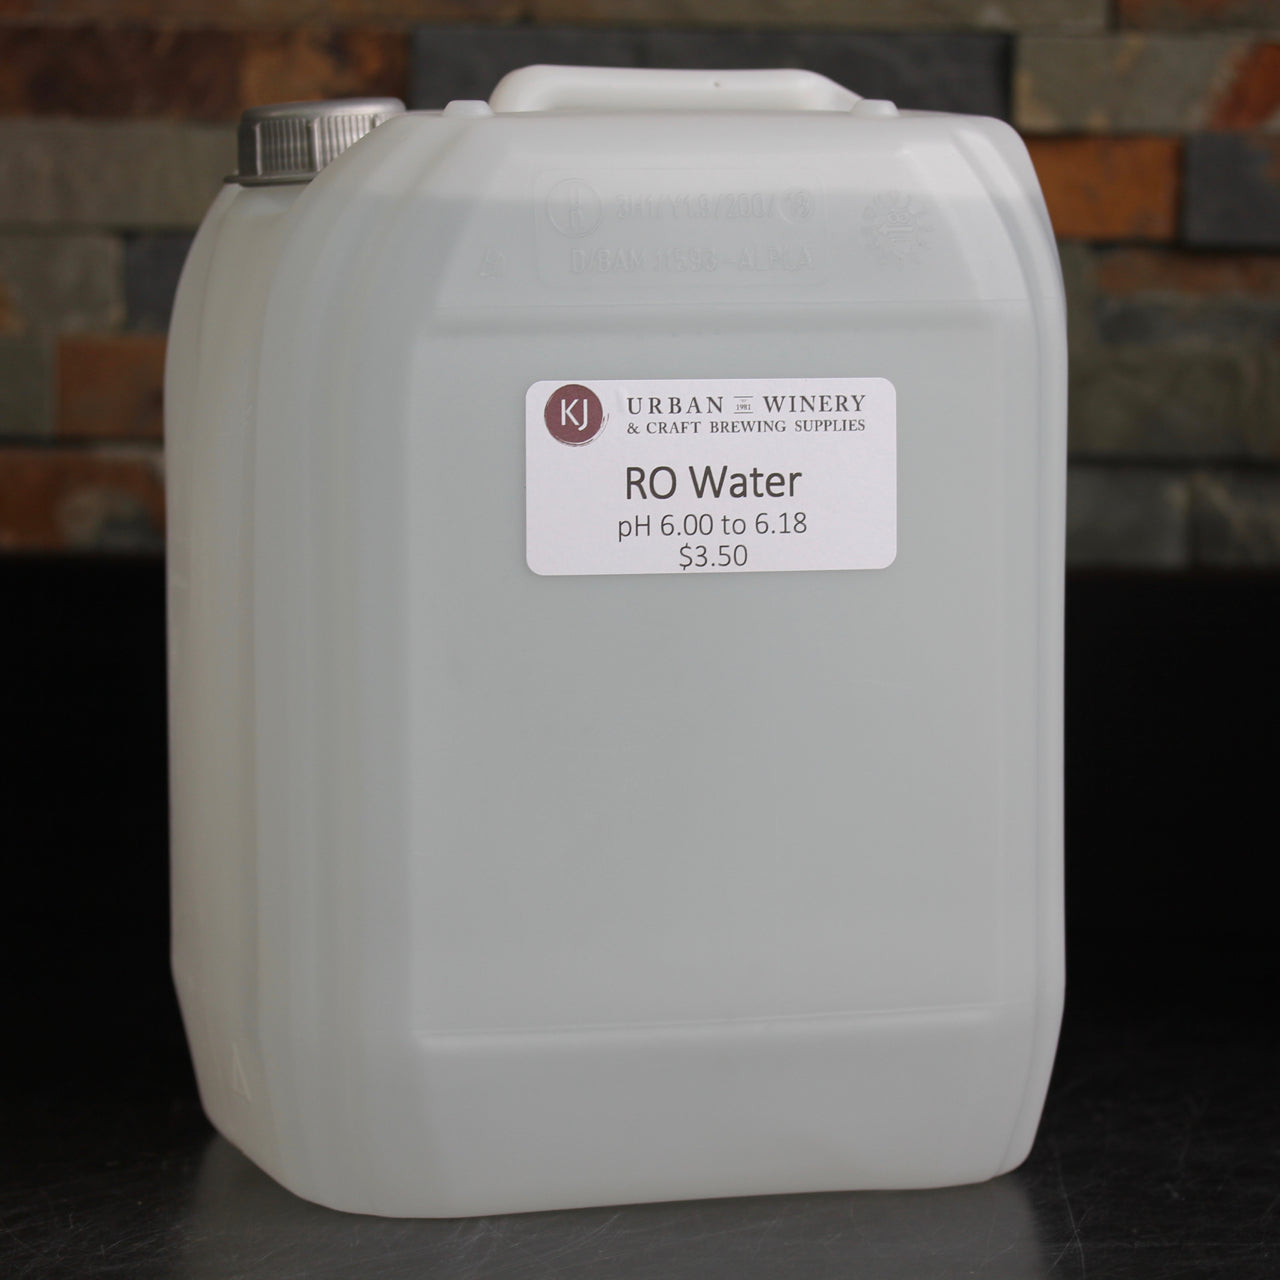 RO Water 11L (2.9 Gallon)